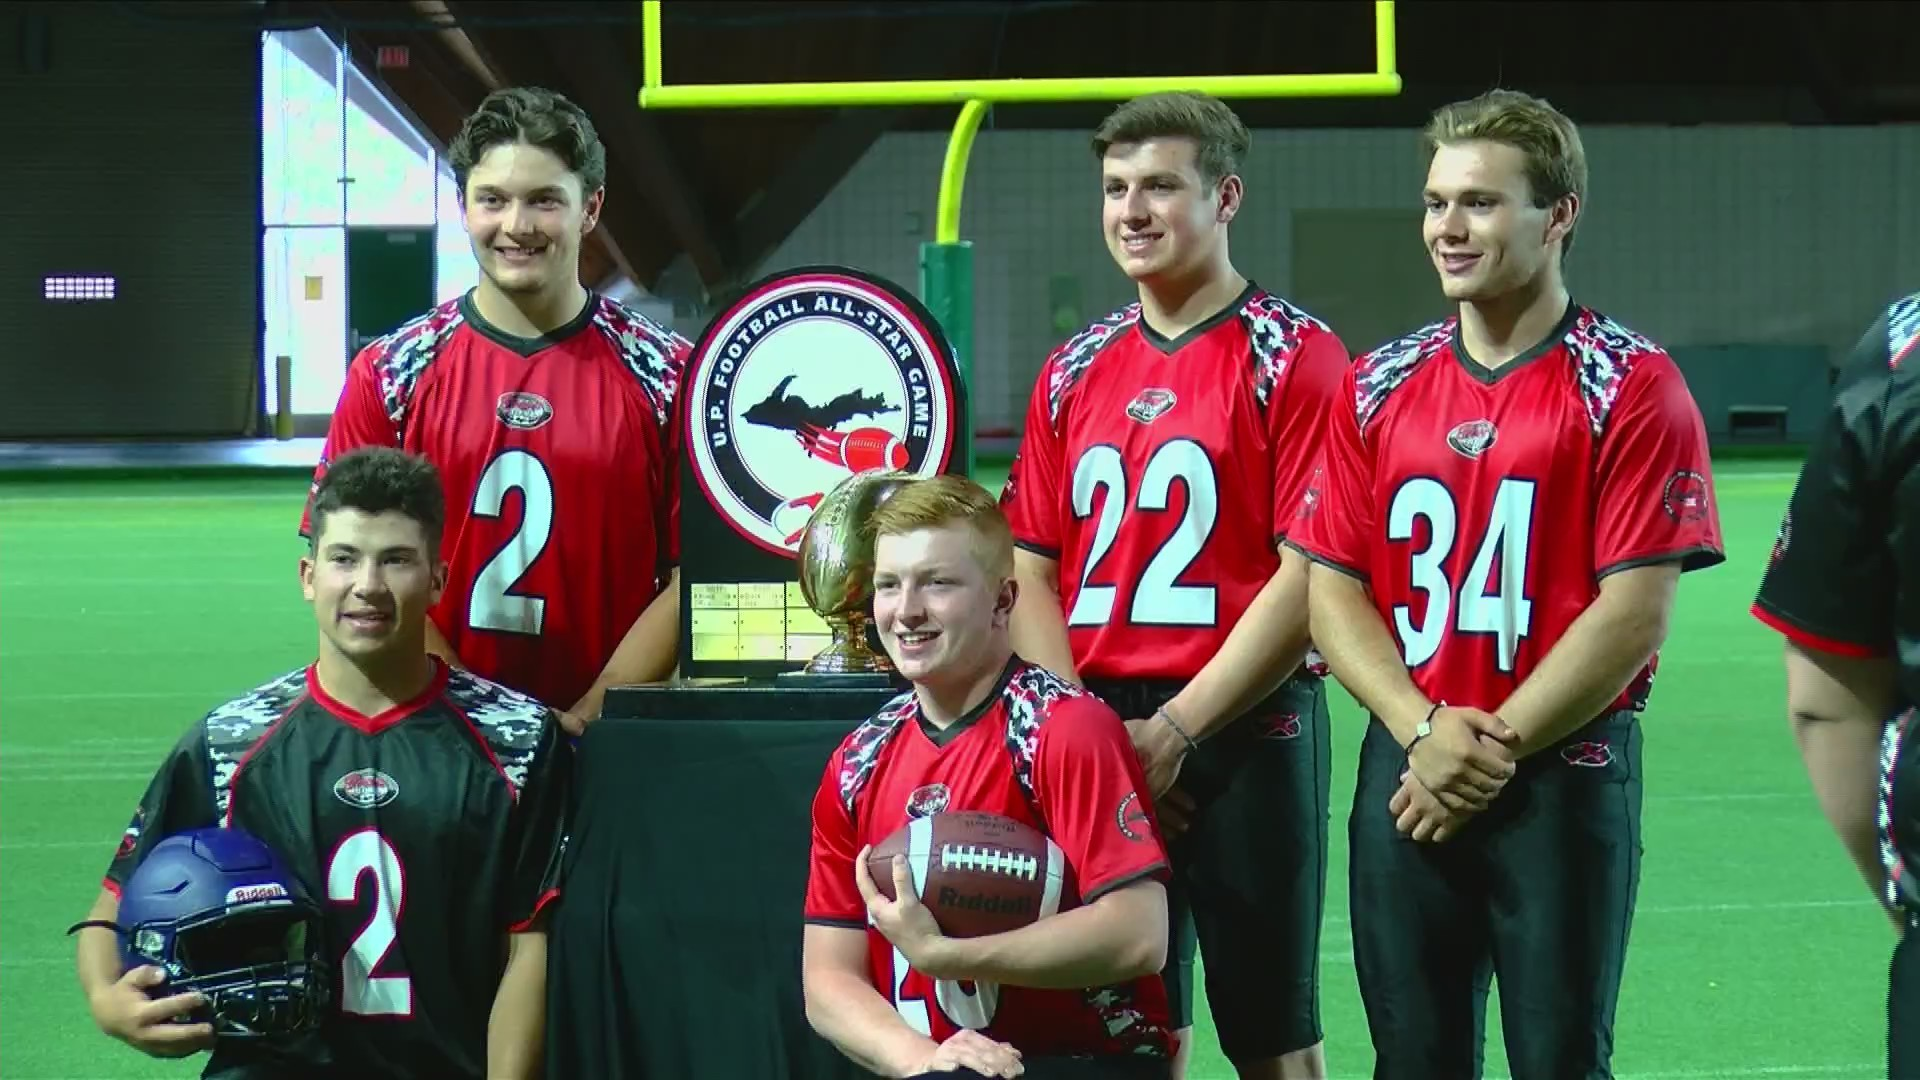 U.P. All-Stars hold media day, talk about busy week on and off the field